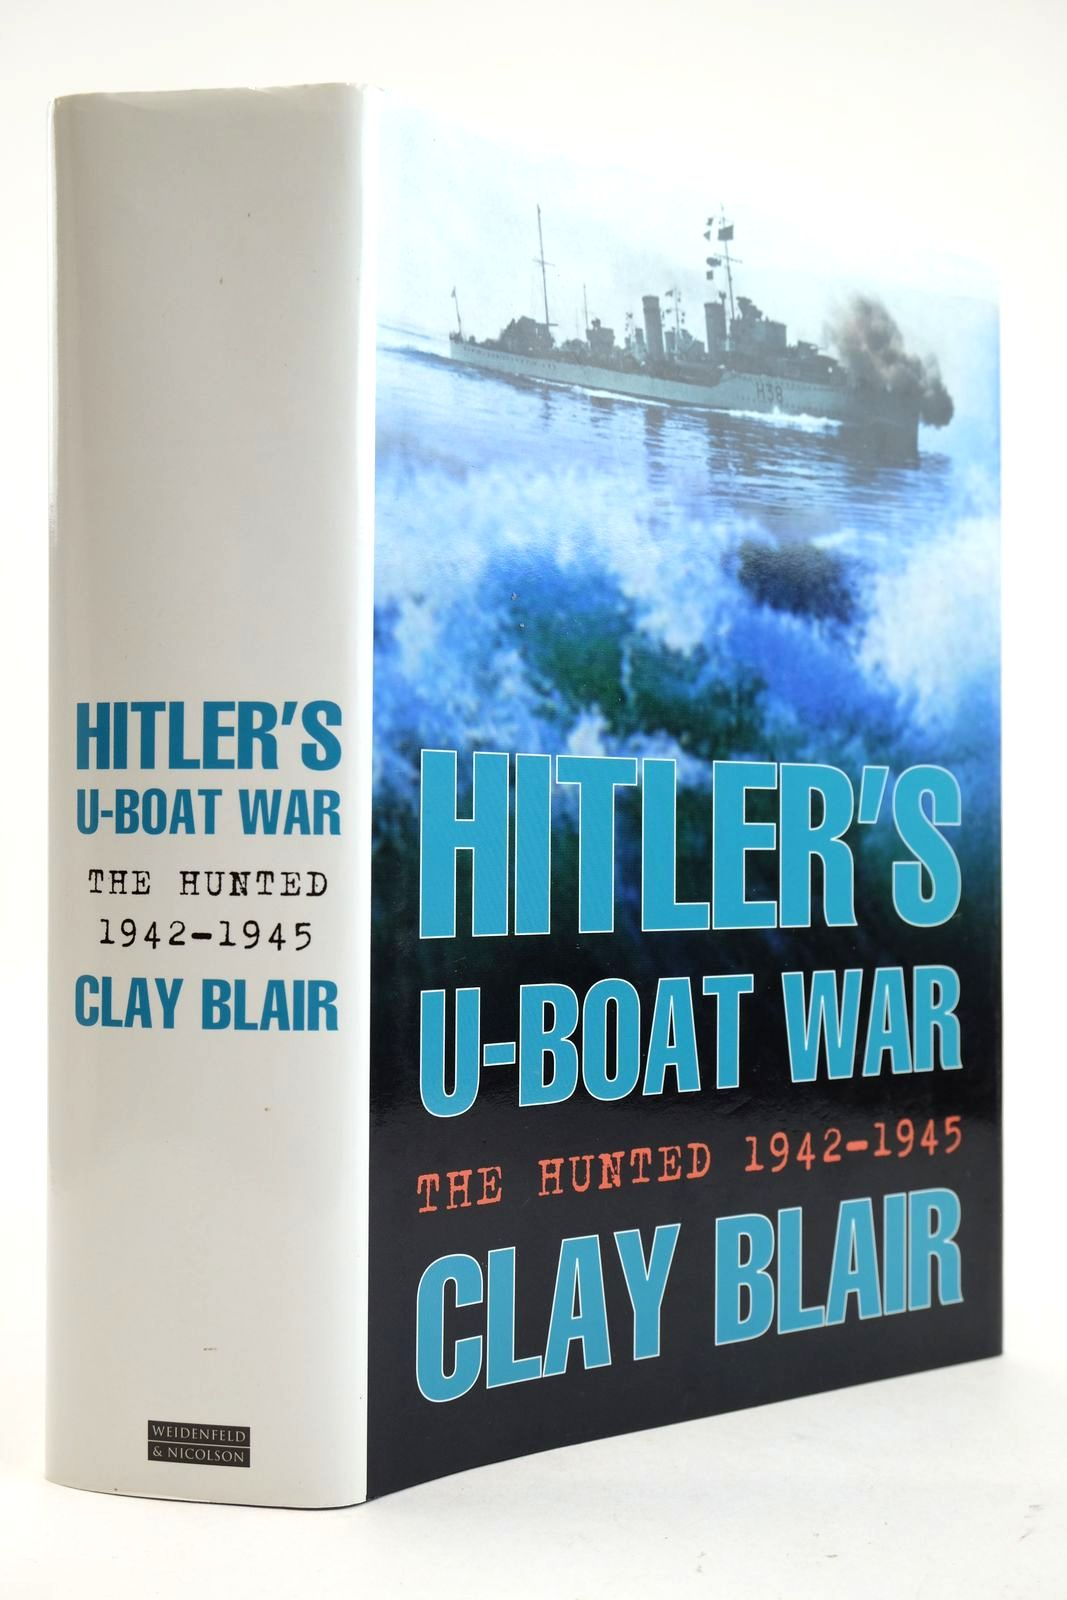 Photo of HITLER'S U-BOAT WAR: THE HUNTED 1942-1945 written by Blair, Clay published by Weidenfeld and Nicolson (STOCK CODE: 2132900)  for sale by Stella & Rose's Books